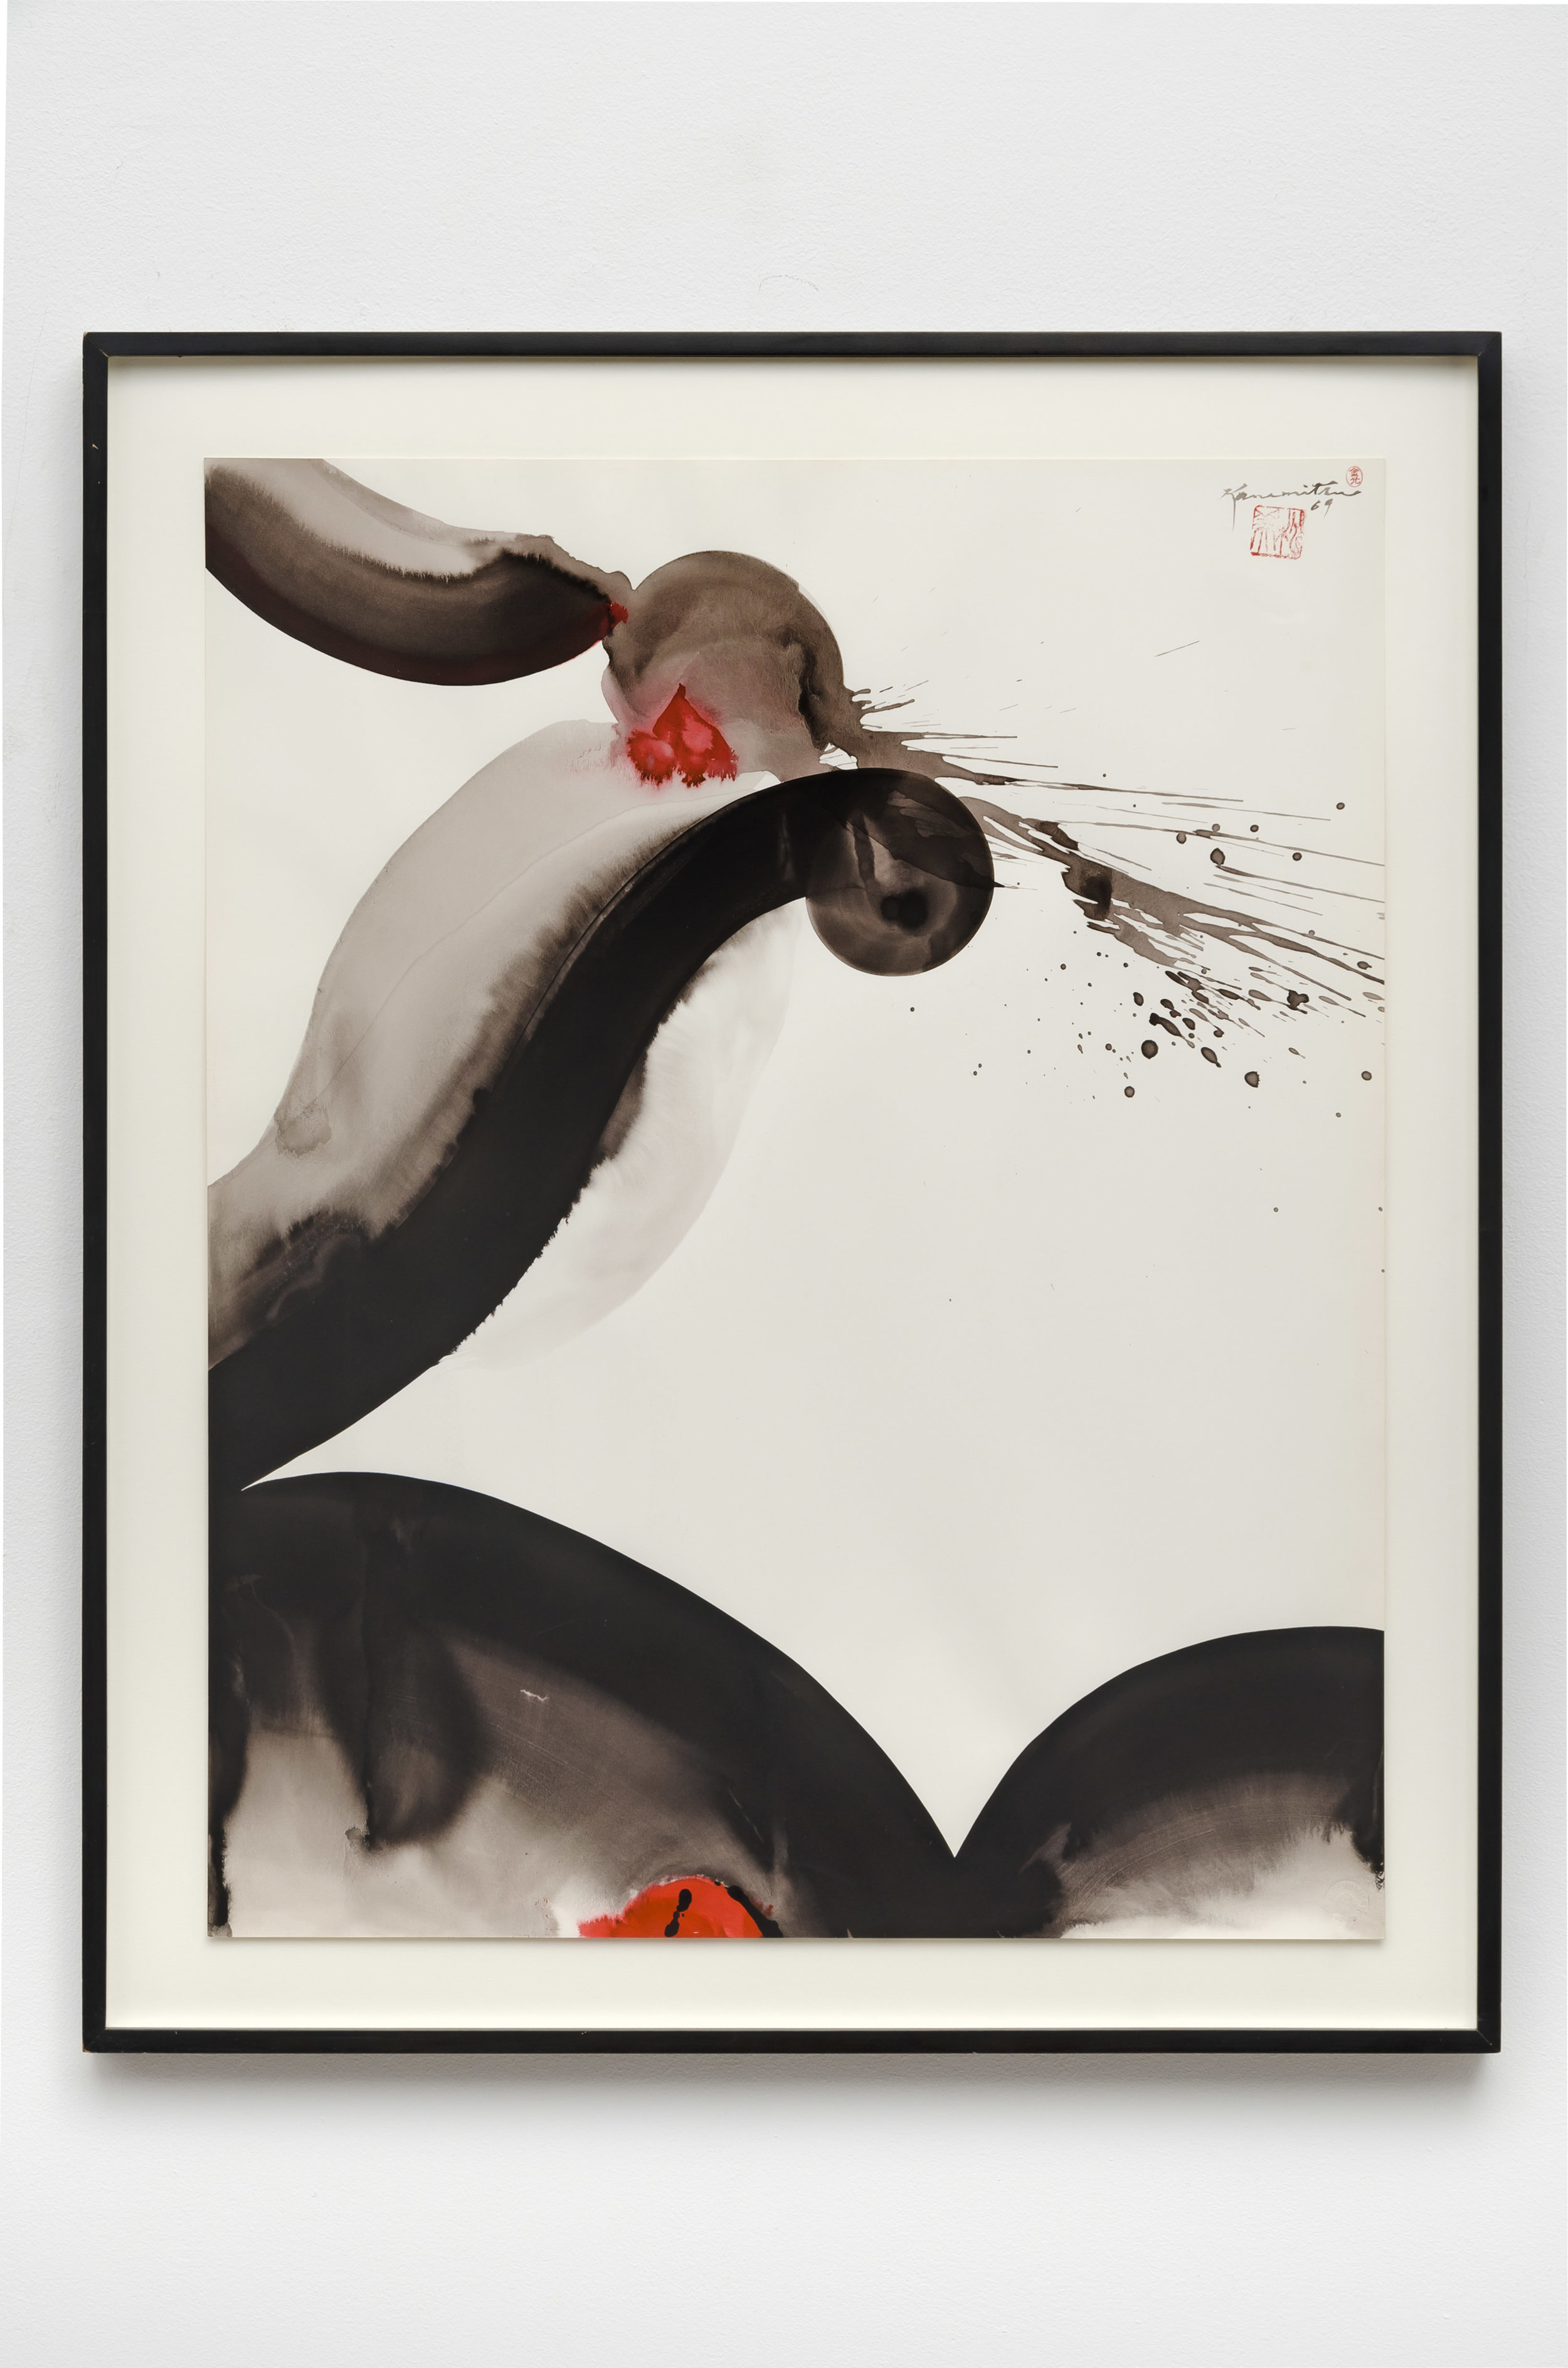 Pacific Series #5 , 1969 ink on paper 34 x 28 inches; 86.4 x 71.1 centimeters